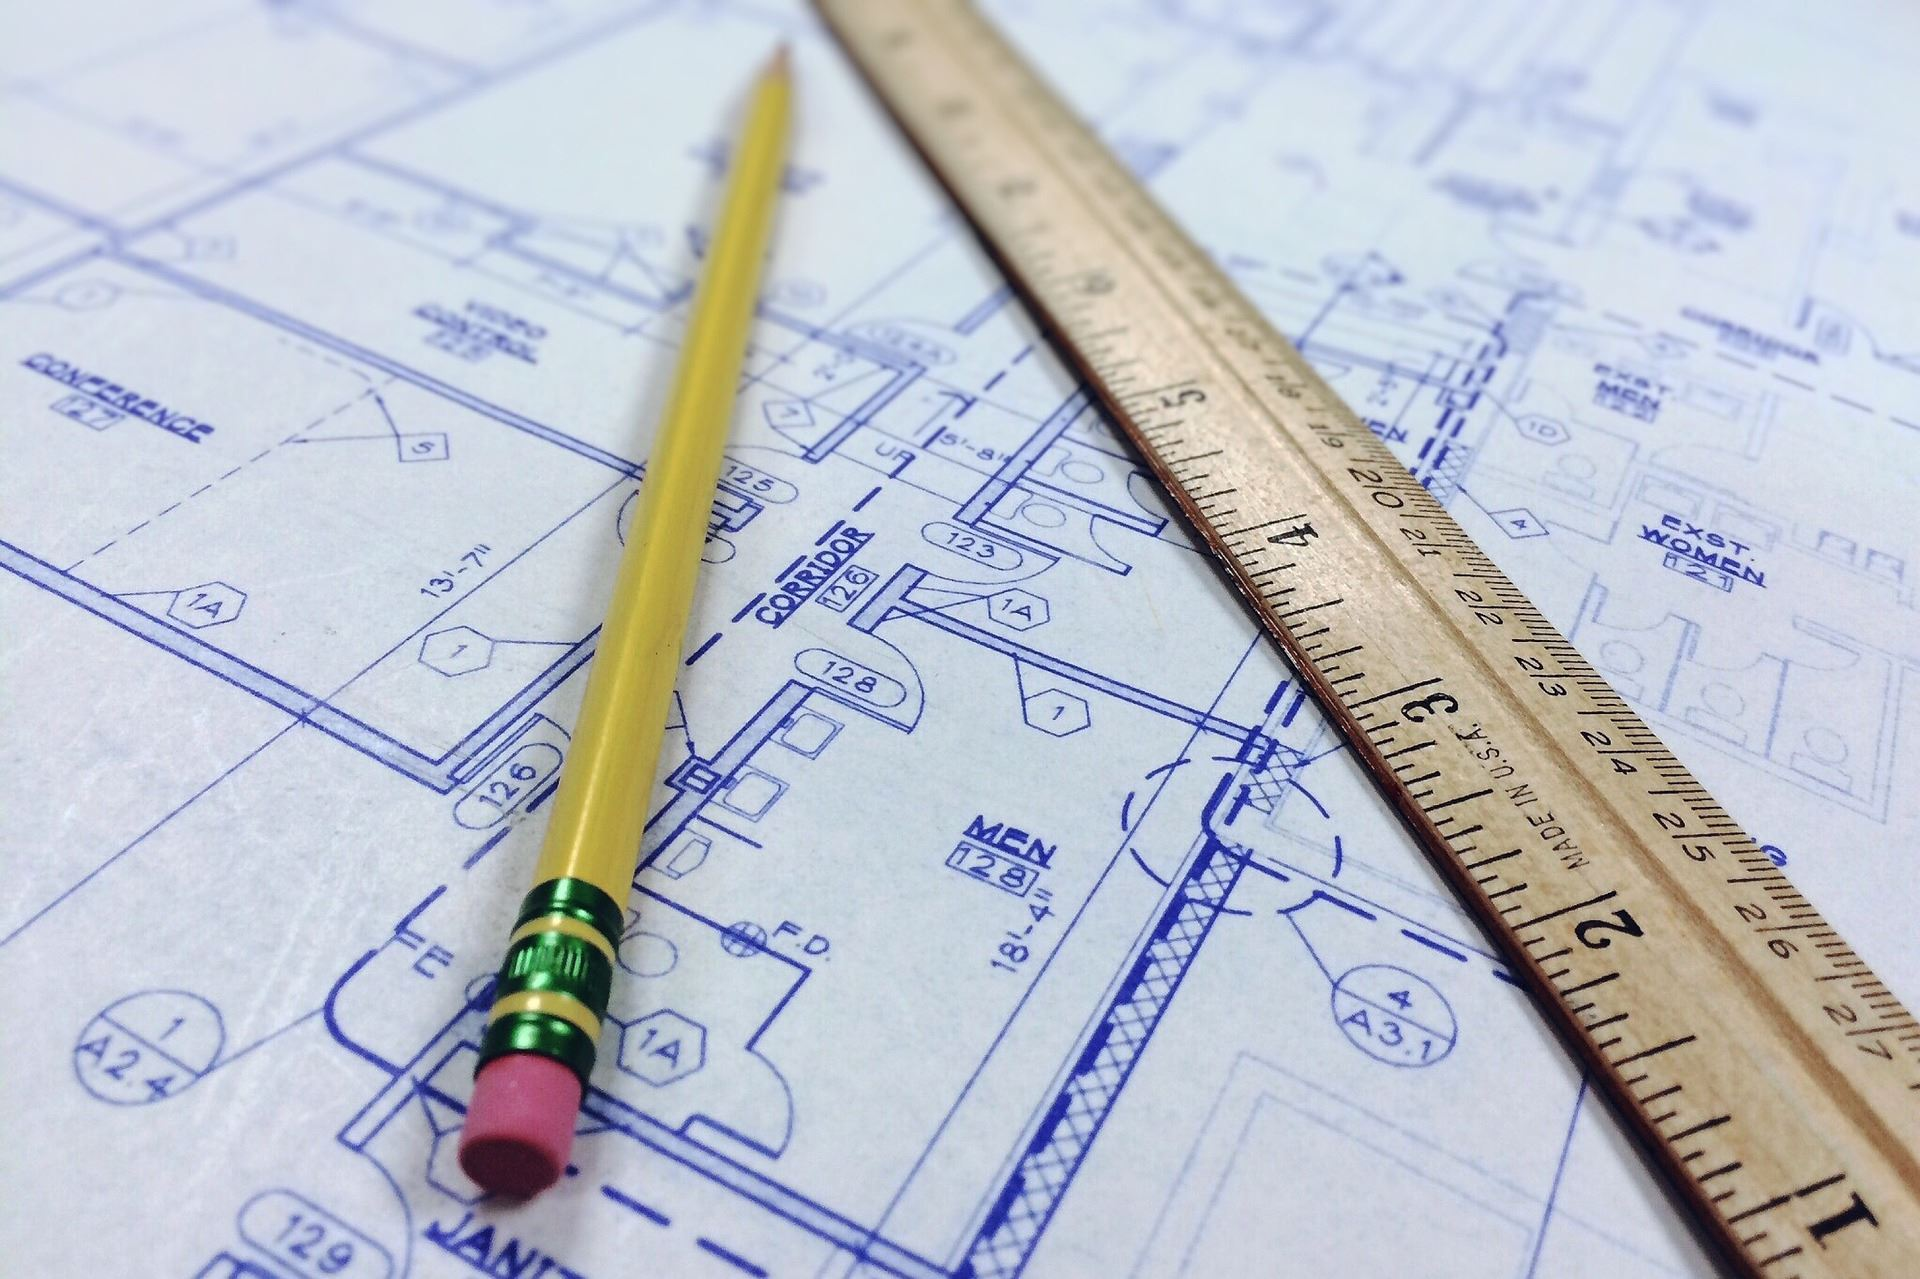 Ruler and pencil sitting on top of a building blueprint